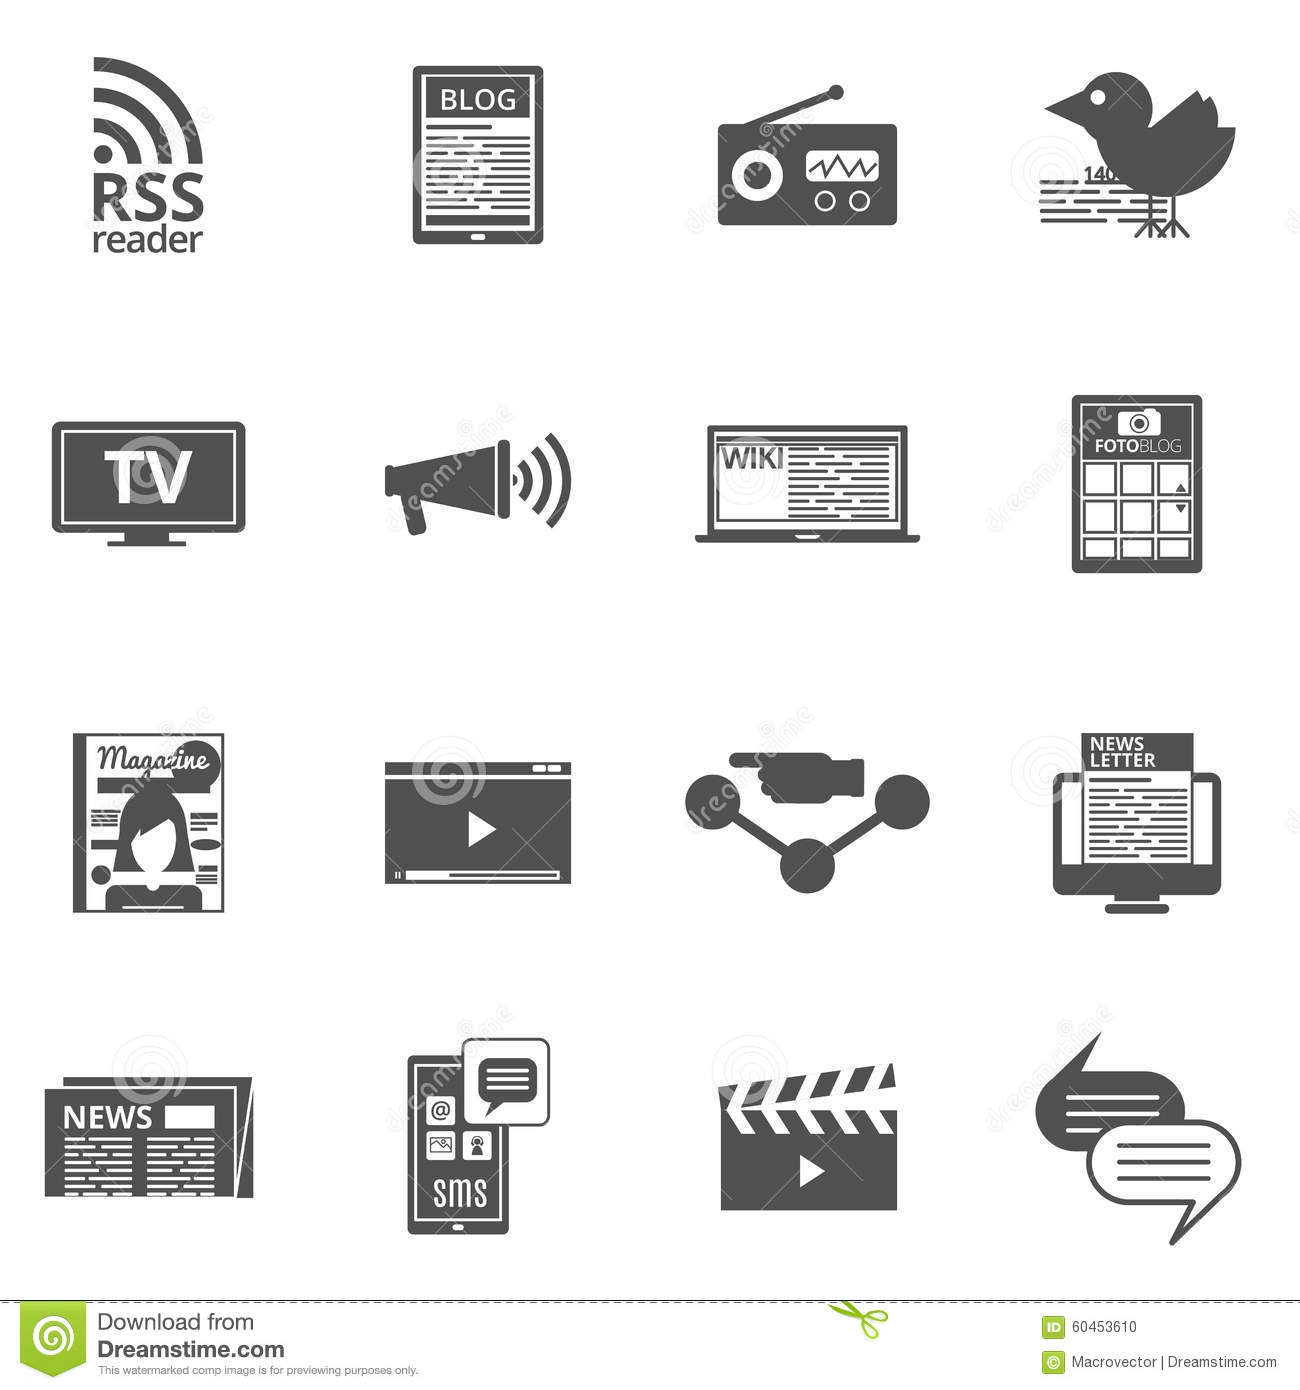 What Are the Functions of Mass Media?